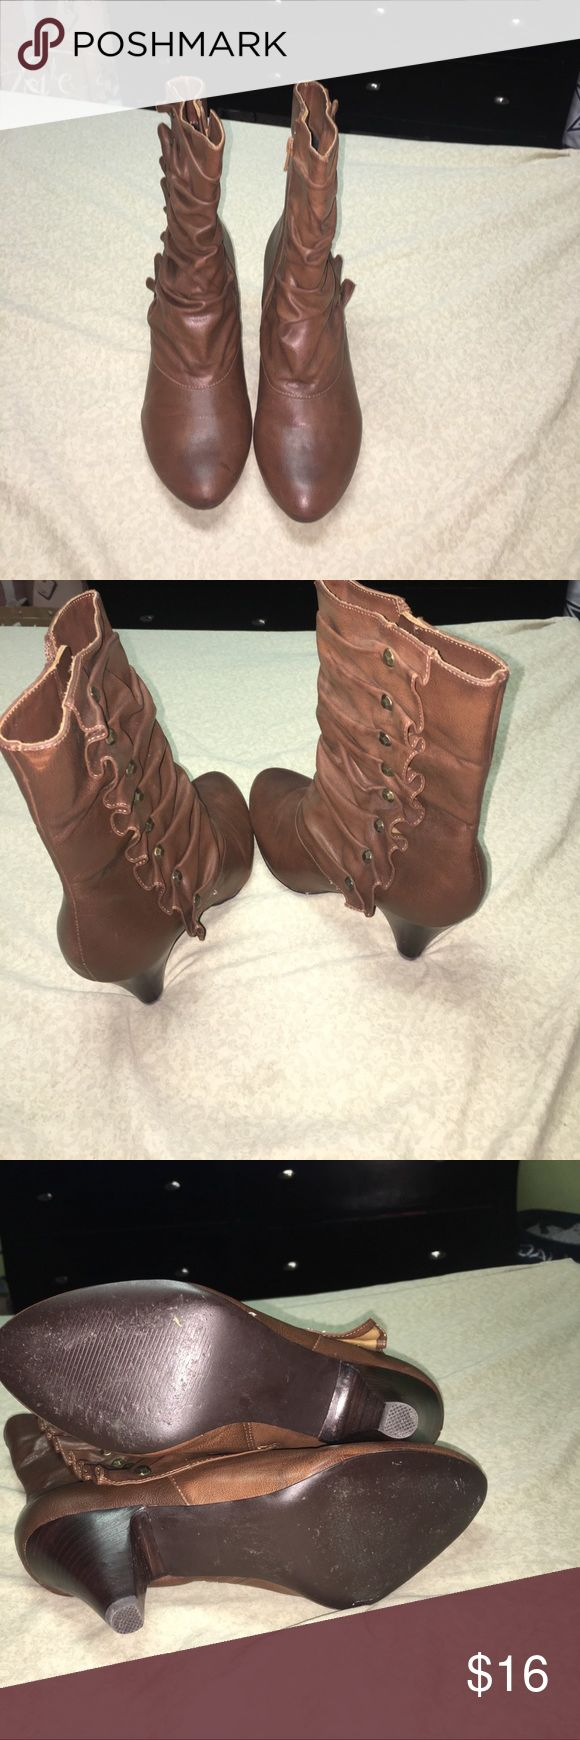 Carlos Santana boots Carlos Santana boots in pretty good condition there is a small flaw as shown in pictures. Other then that there Boots got a lot of life left in them. Purchased from Macy's from a smoke free home if u have any questions please ask ty Carlos Santana Shoes Ankle Boots & Booties